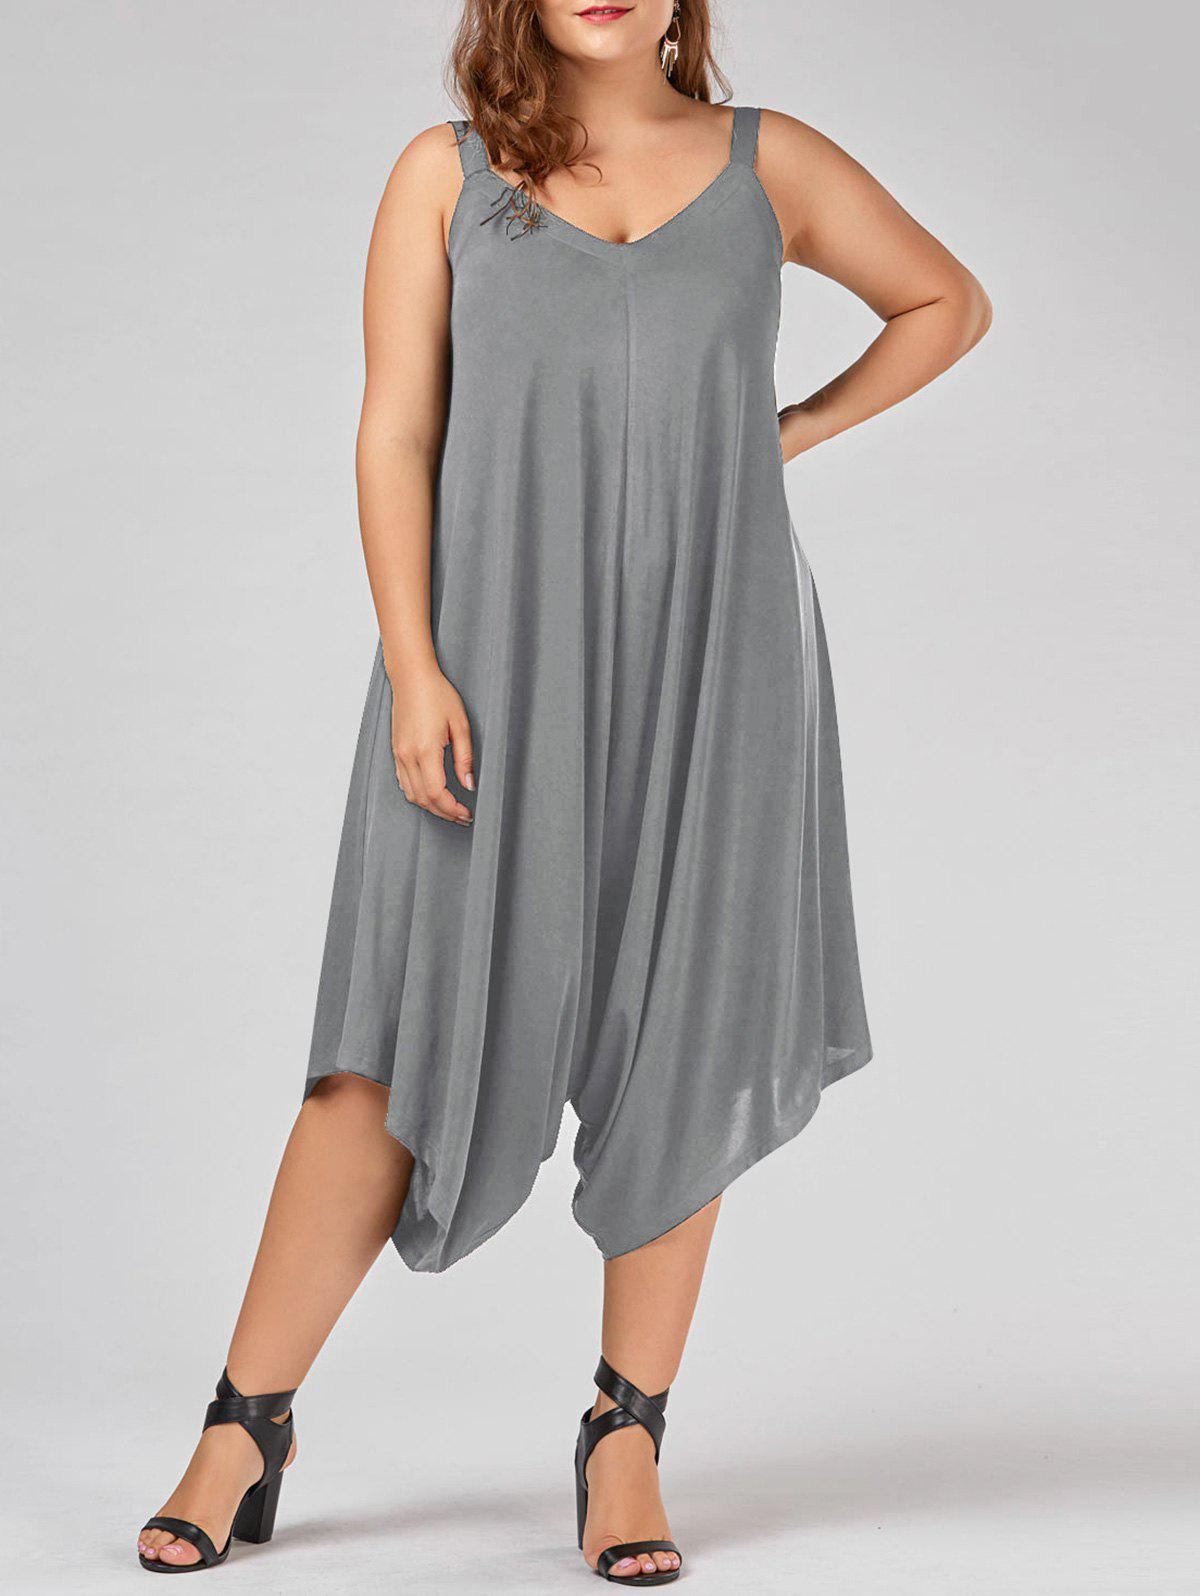 V Neck Plus Size Capri Baggy JumpsuitWOMEN<br><br>Size: 2XL; Color: GRAY; Style: Casual; Length: Capri; Material: Polyester,Spandex; Fit Type: Loose; Waist Type: High; Closure Type: Elastic Waist; Pattern Type: Solid; Pant Style: Cross-pants; Weight: 0.4200kg; Package Contents: 1 x Jumpsuit;